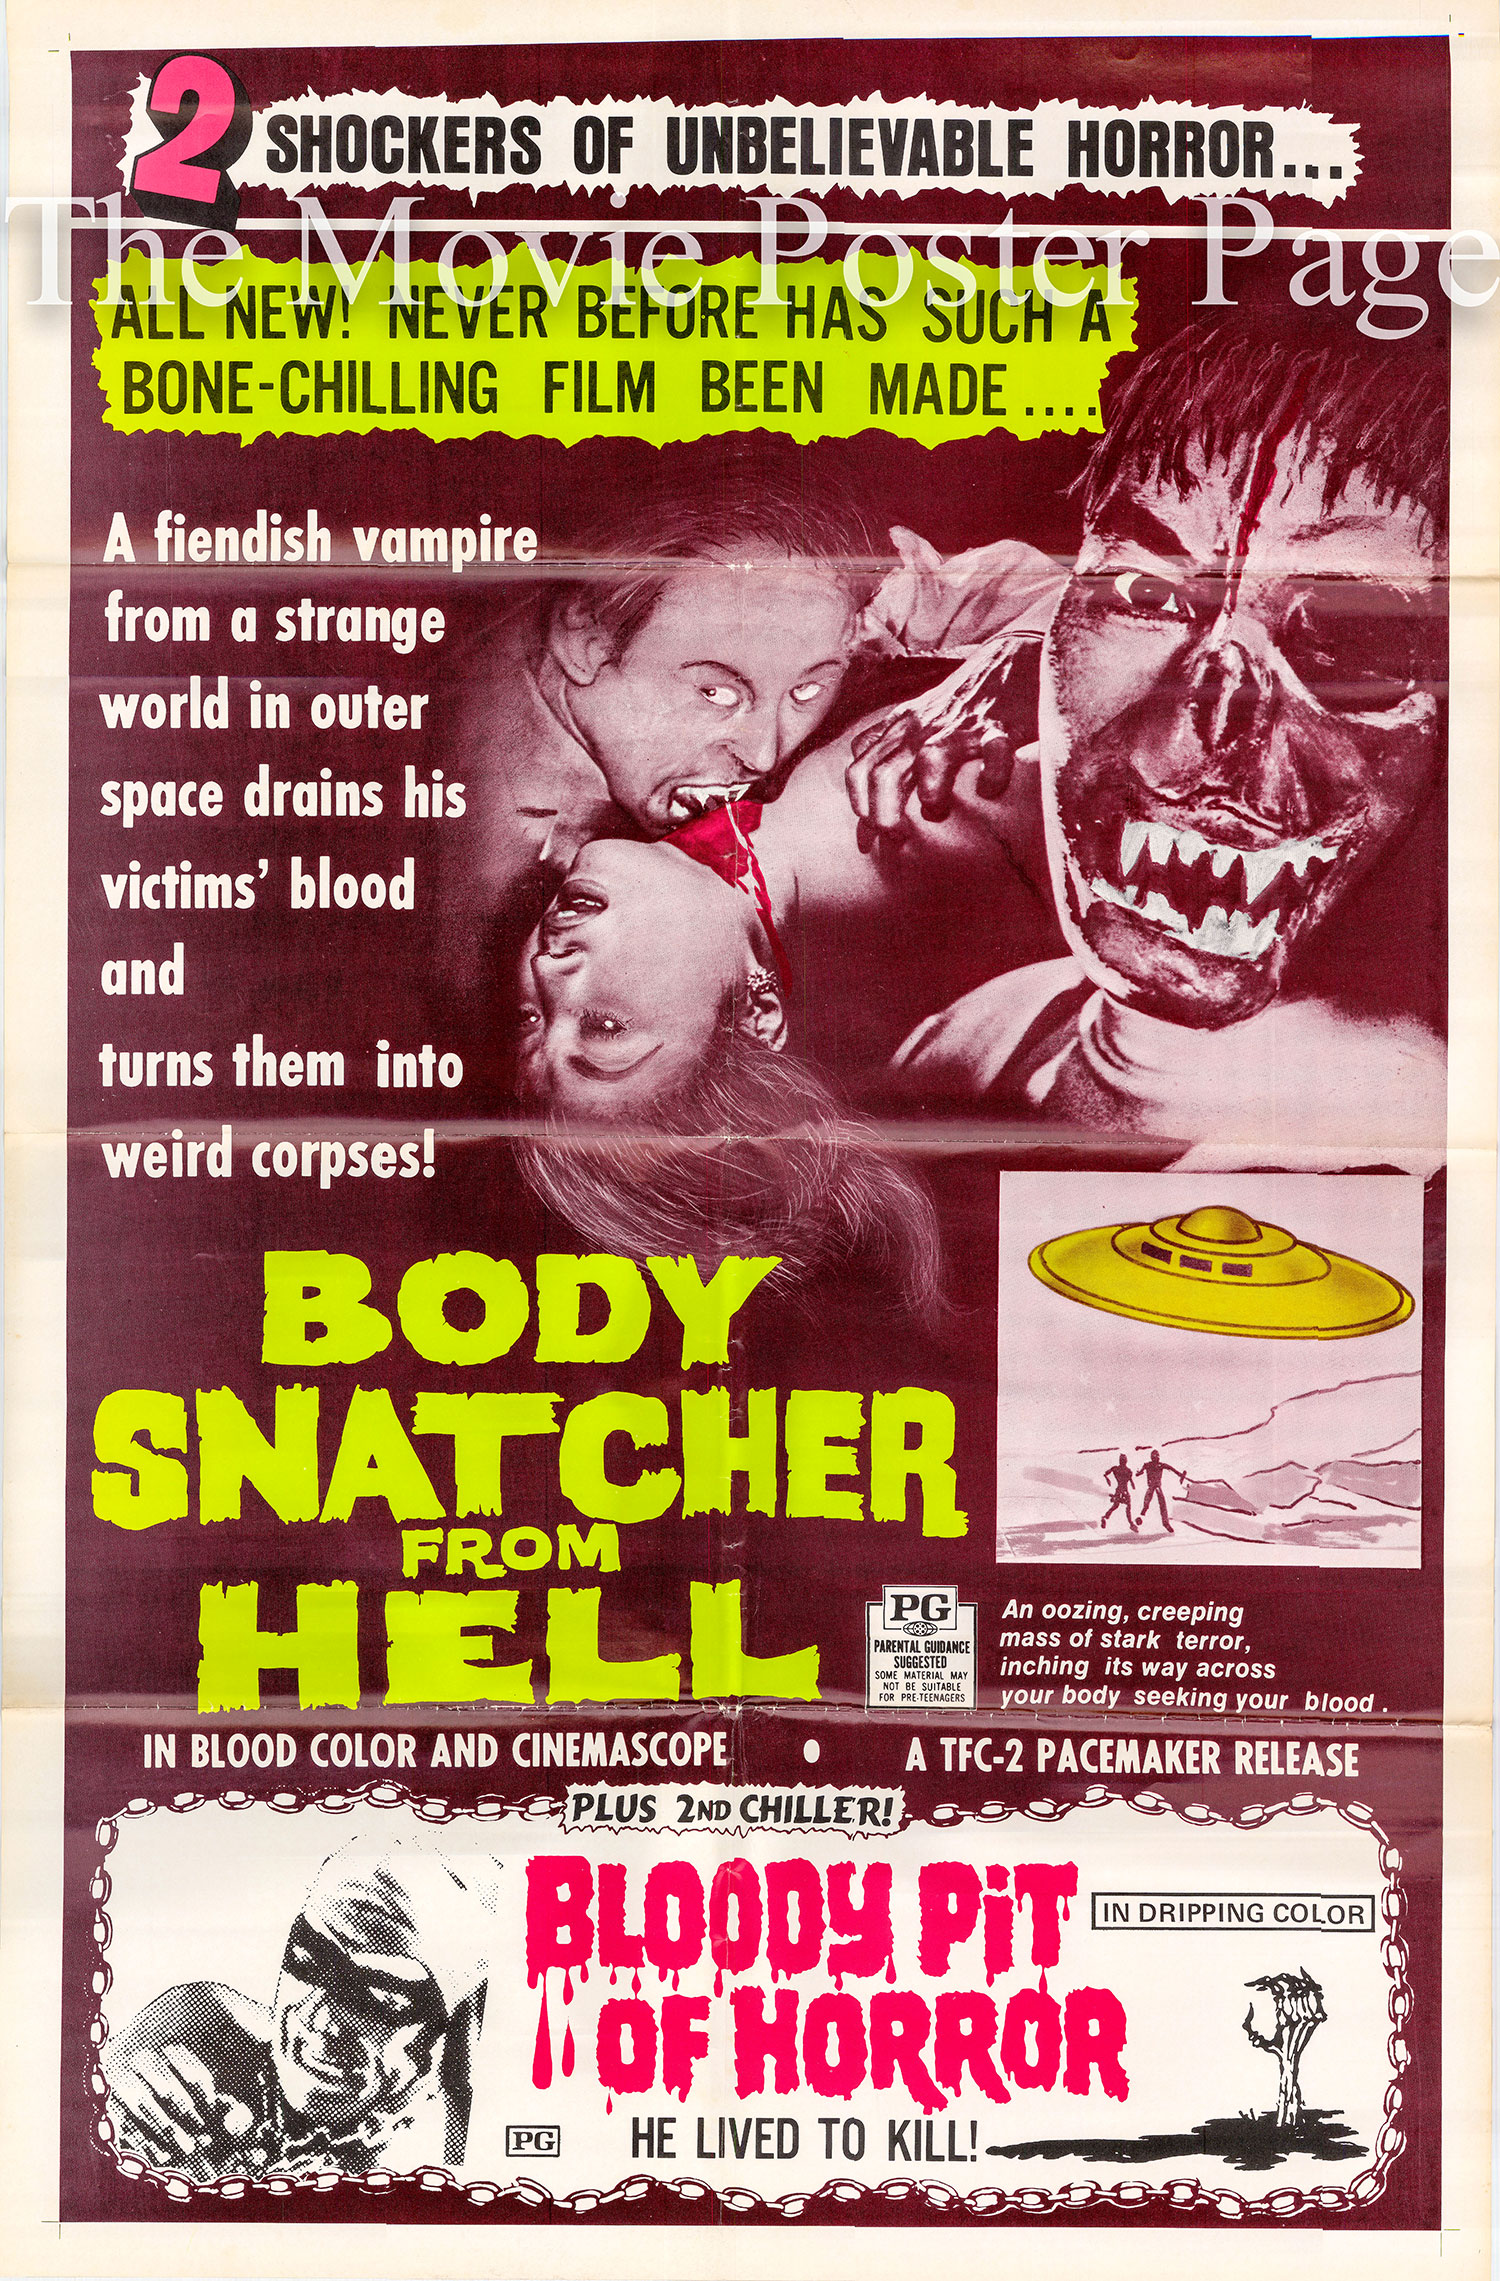 Picutred is a US combo one-sheet poster for the films Body Snatcher from Hell and Bloody Pit of Horror.